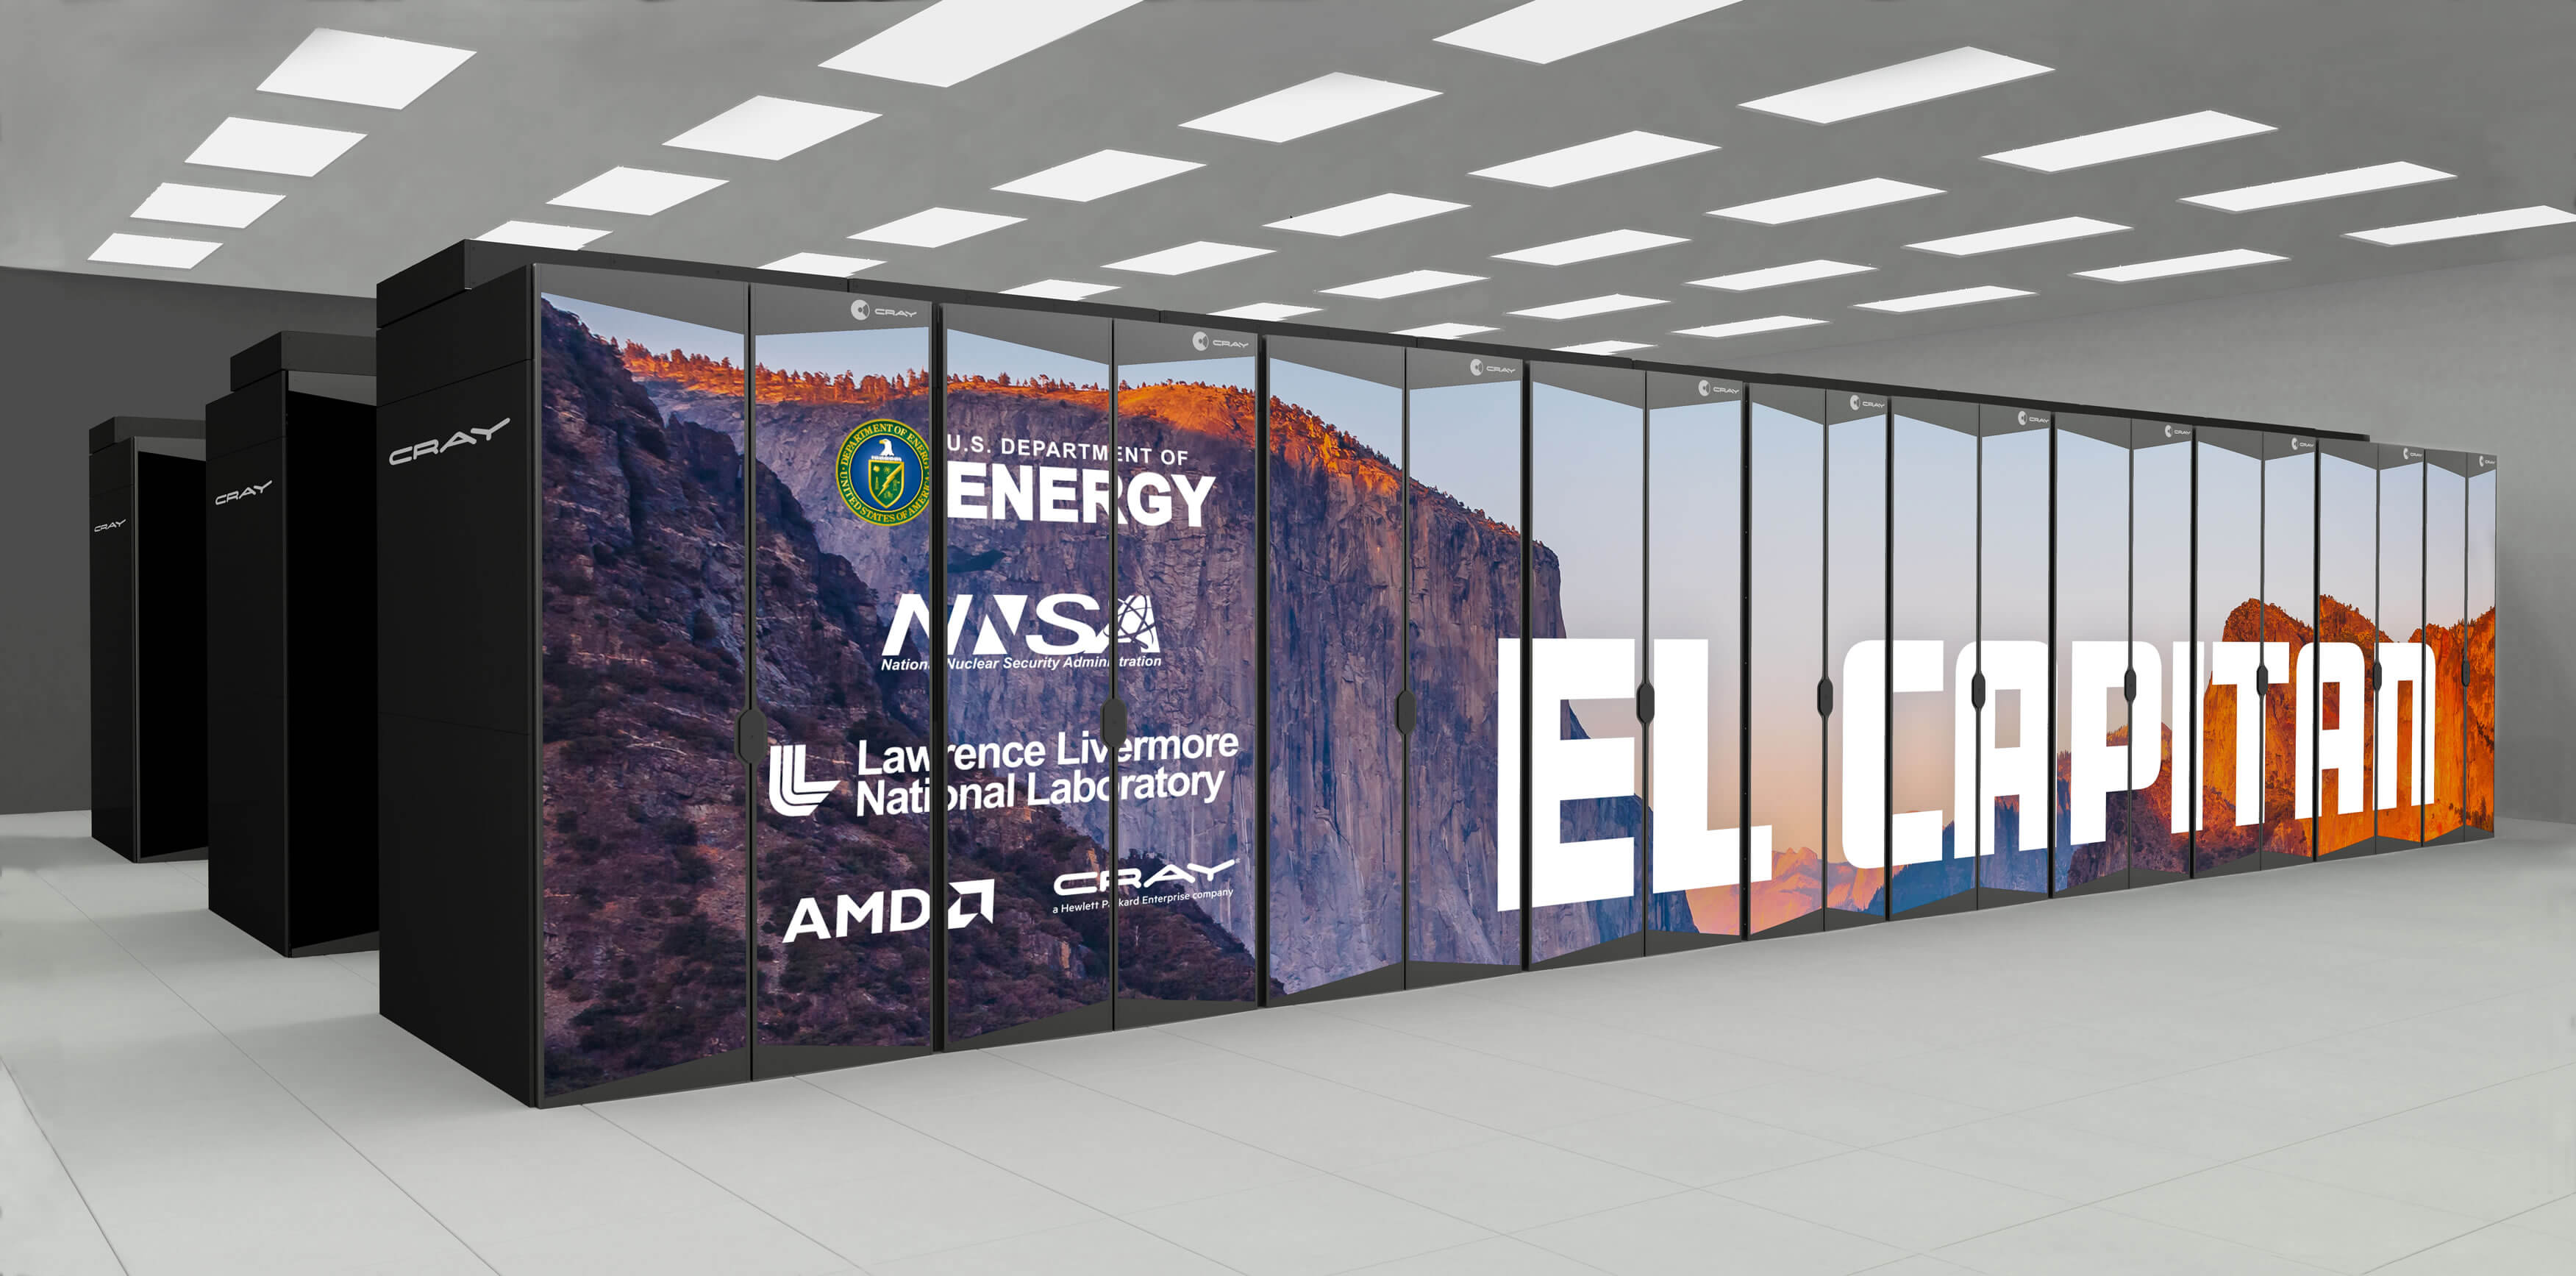 AMD CPUs and GPUs will power the future world's fastest supercomputer, 10x faster than current leader